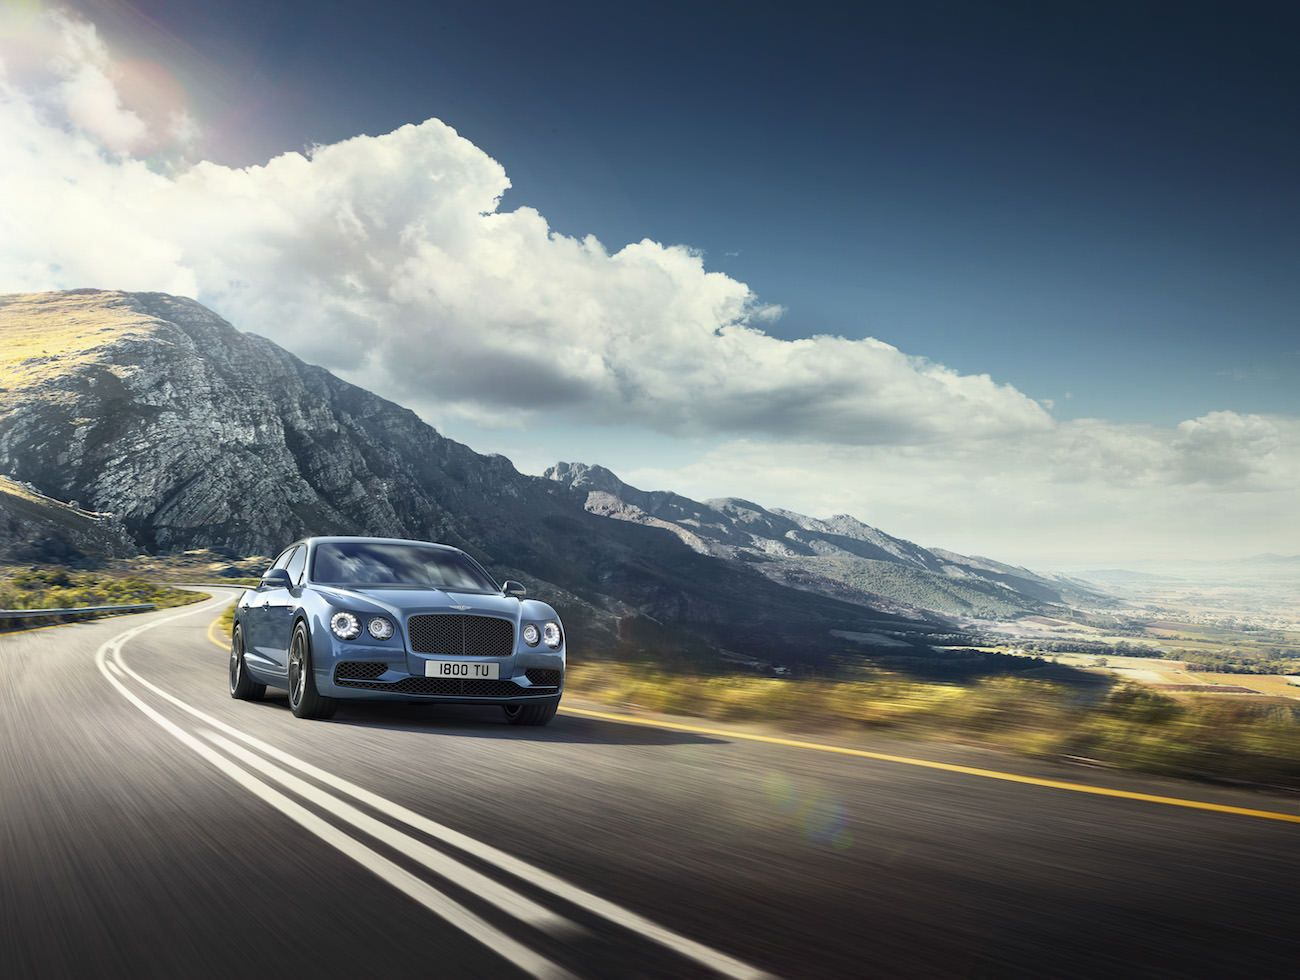 bentley-flying-spur-w12s-road-1